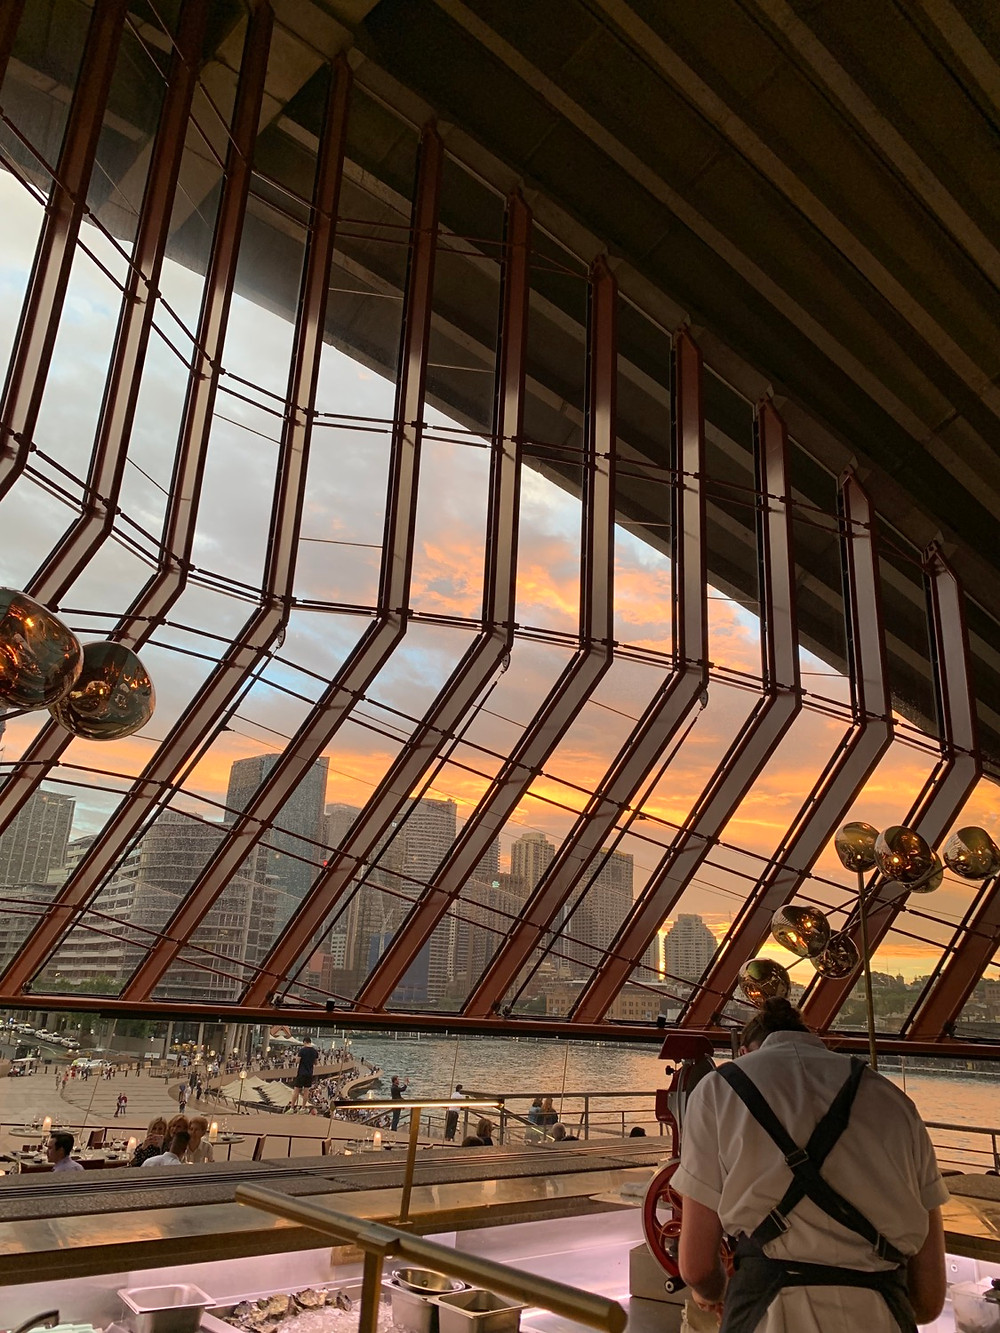 Bennelong Restaurant and Bar at the Sydney Opera House at Sunset